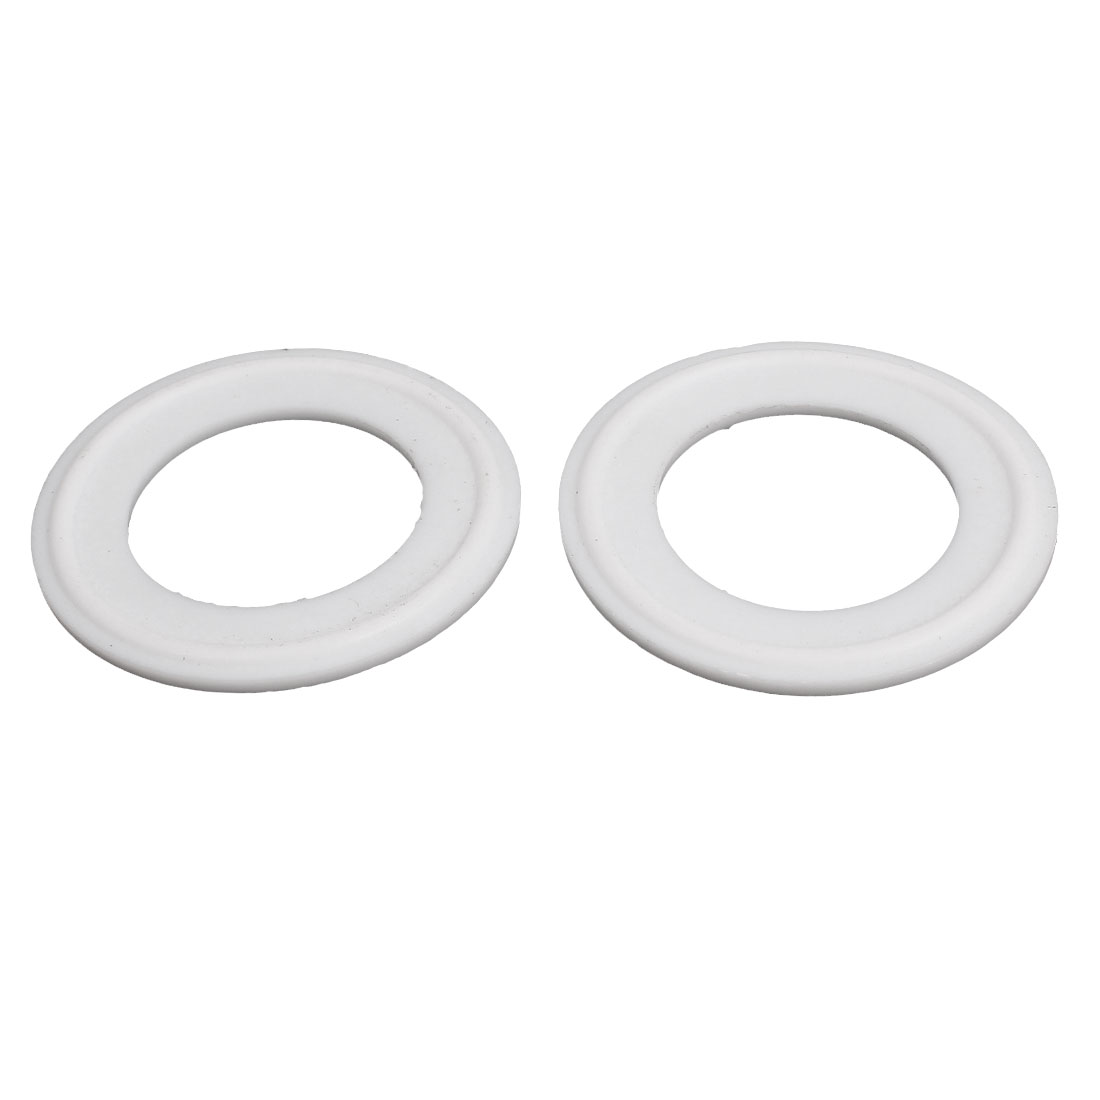 "32mm PTFE Gasket 2pcs for 1.5"" Tri Clamp Sanitary Pipe Fittings Ferrules"